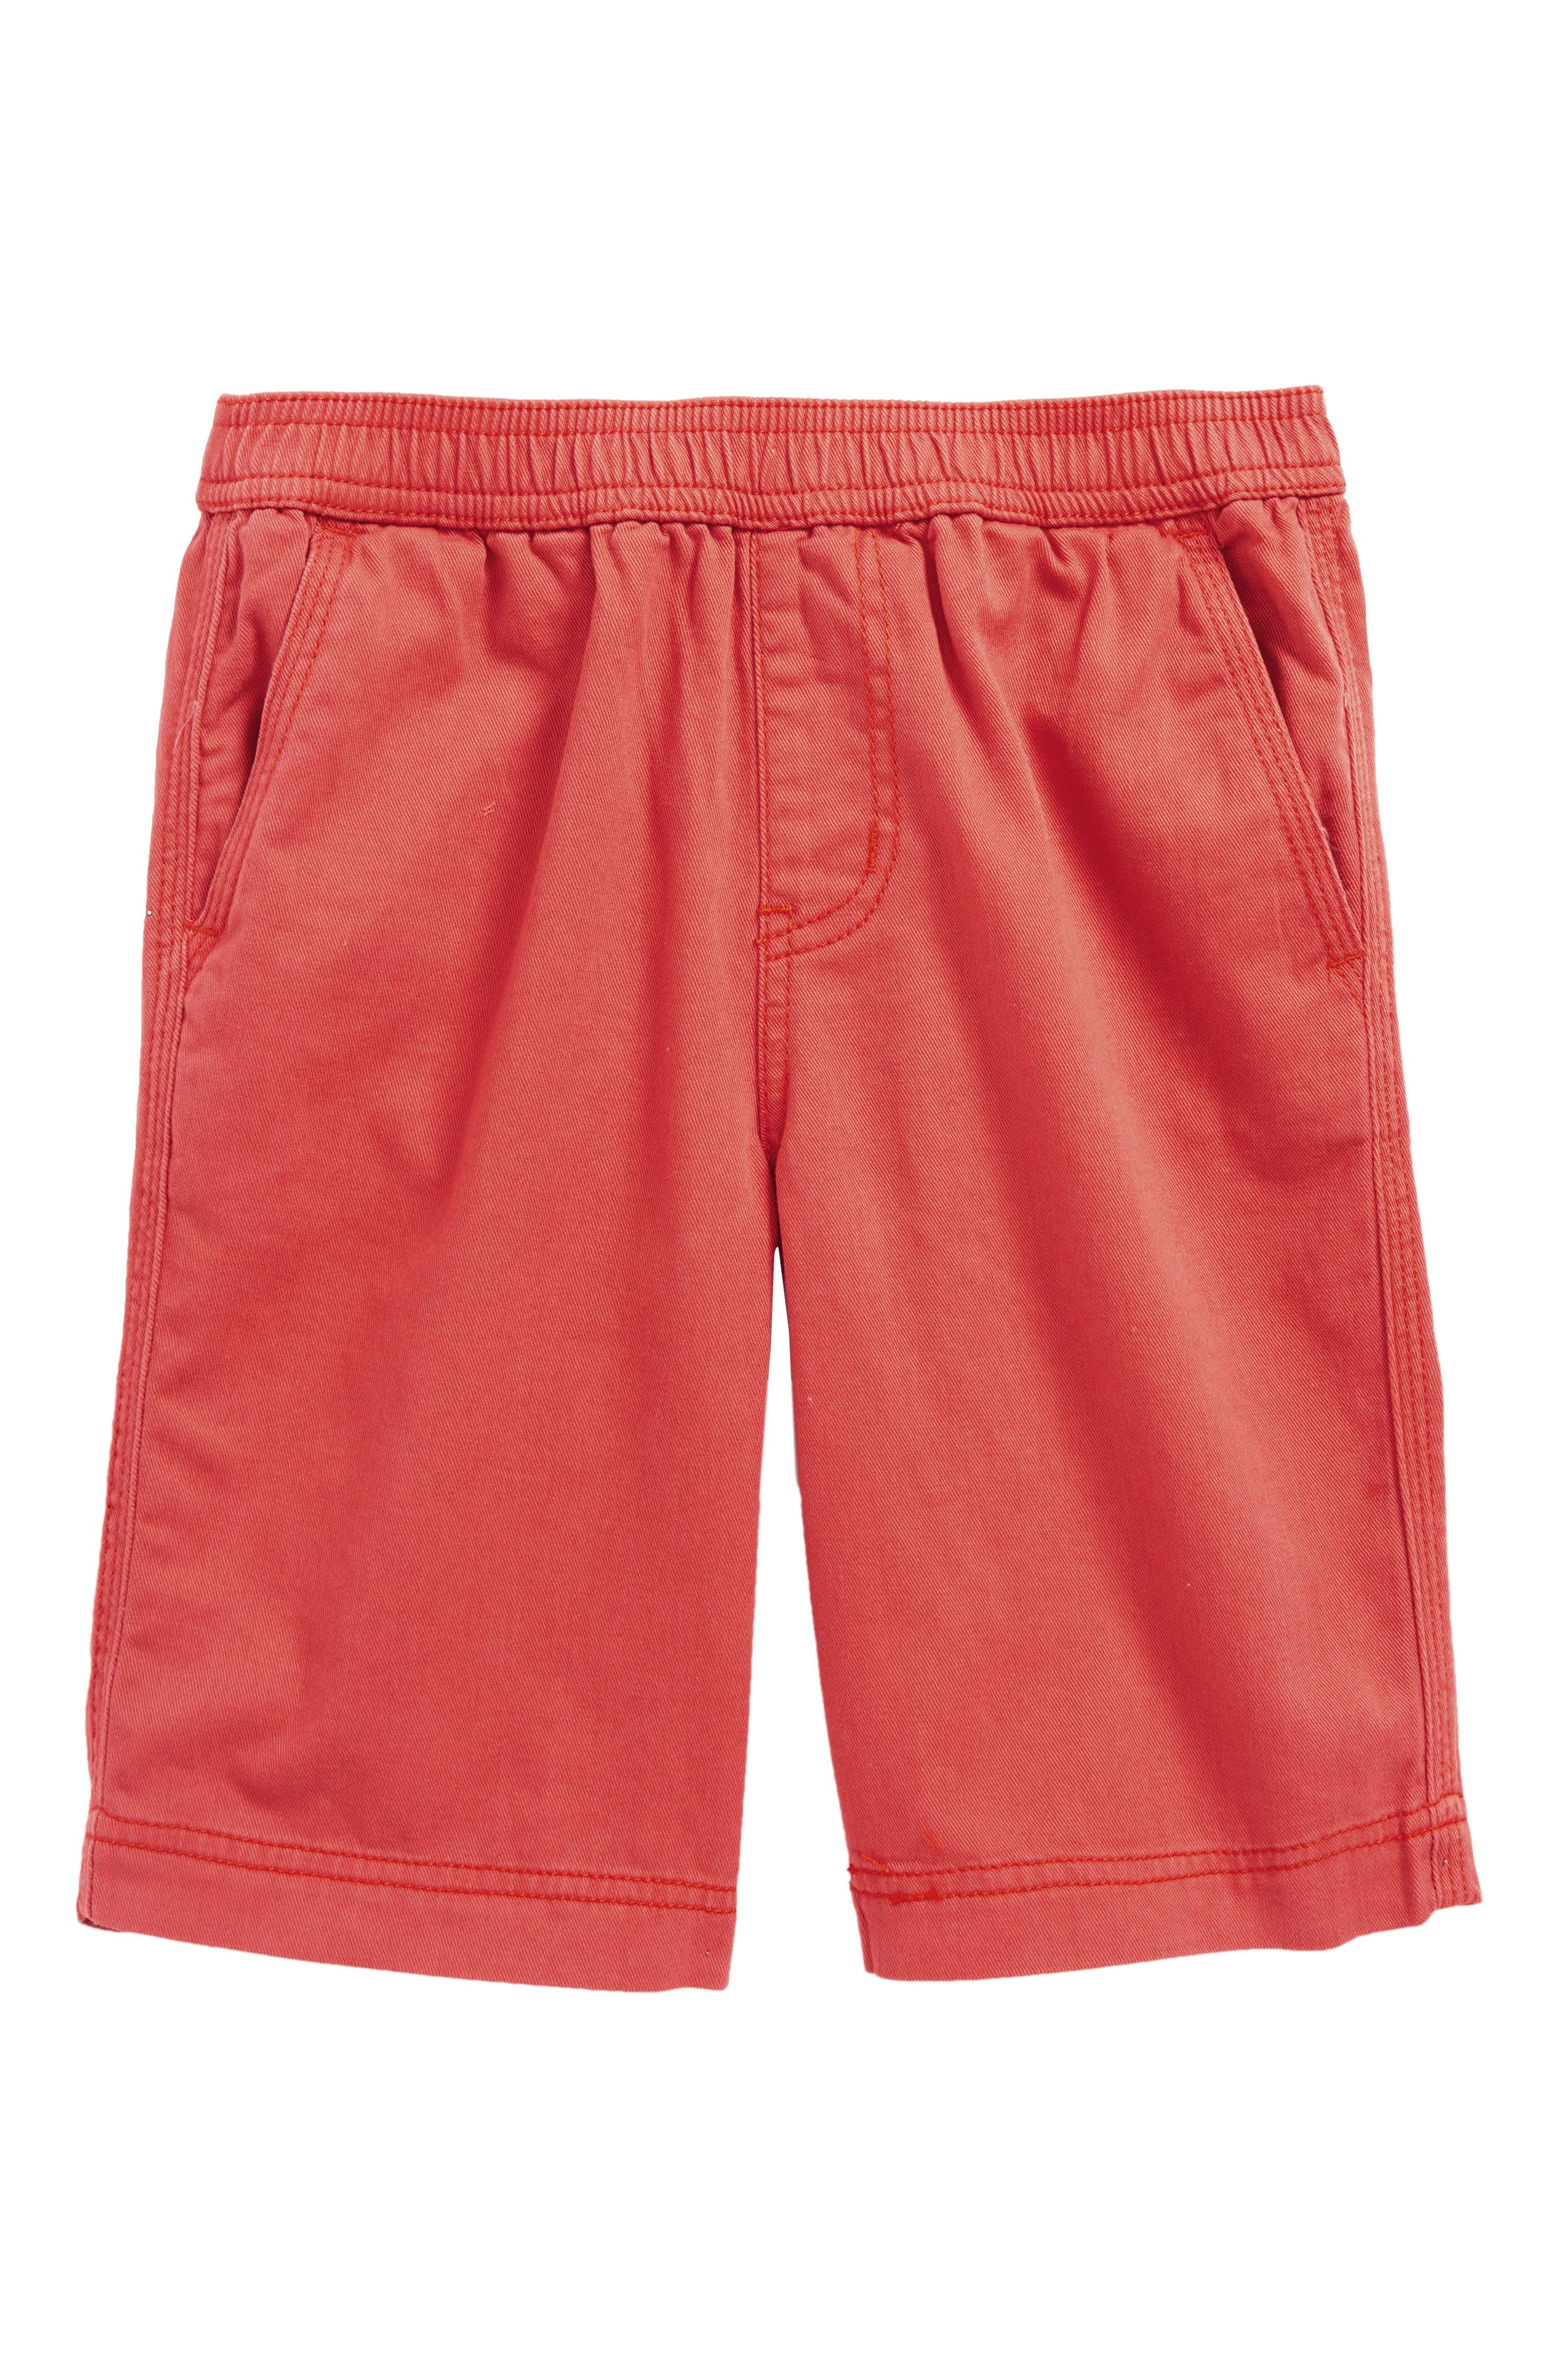 Easy Does It Twill Shorts,                             Main thumbnail 1, color,                             Red Dressy Plaid